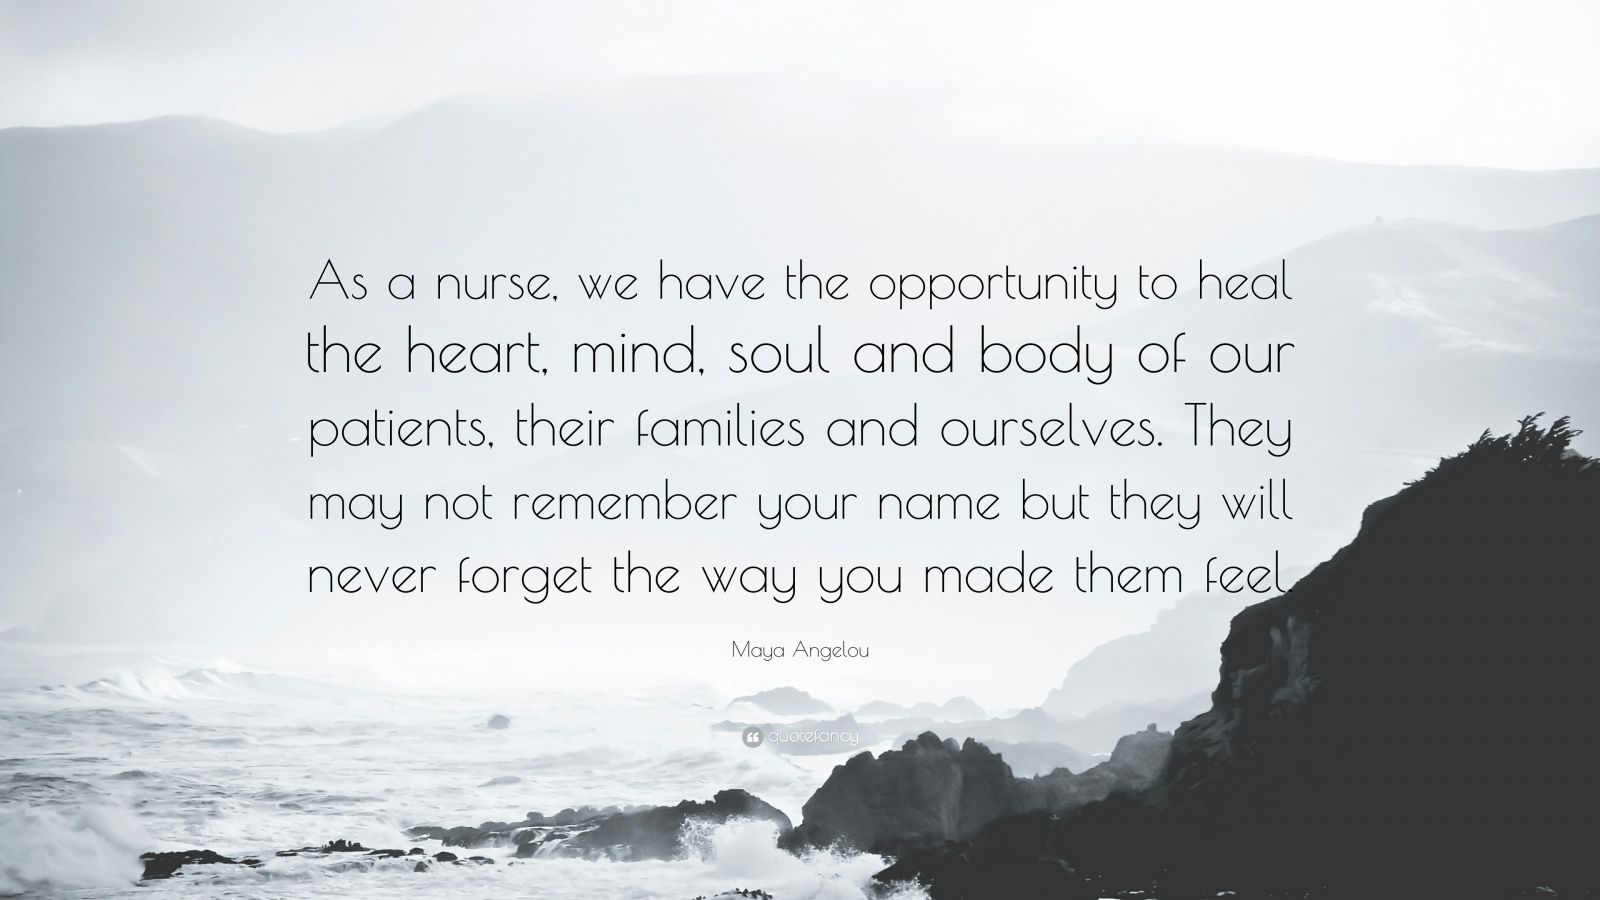 """Maya Angelou Quote: """"As a nurse, we have the opportunity to heal the heart, mind, soul and body of our patients, their families and ourselves. They may not remember your name but they will never forget the way you made them feel."""""""